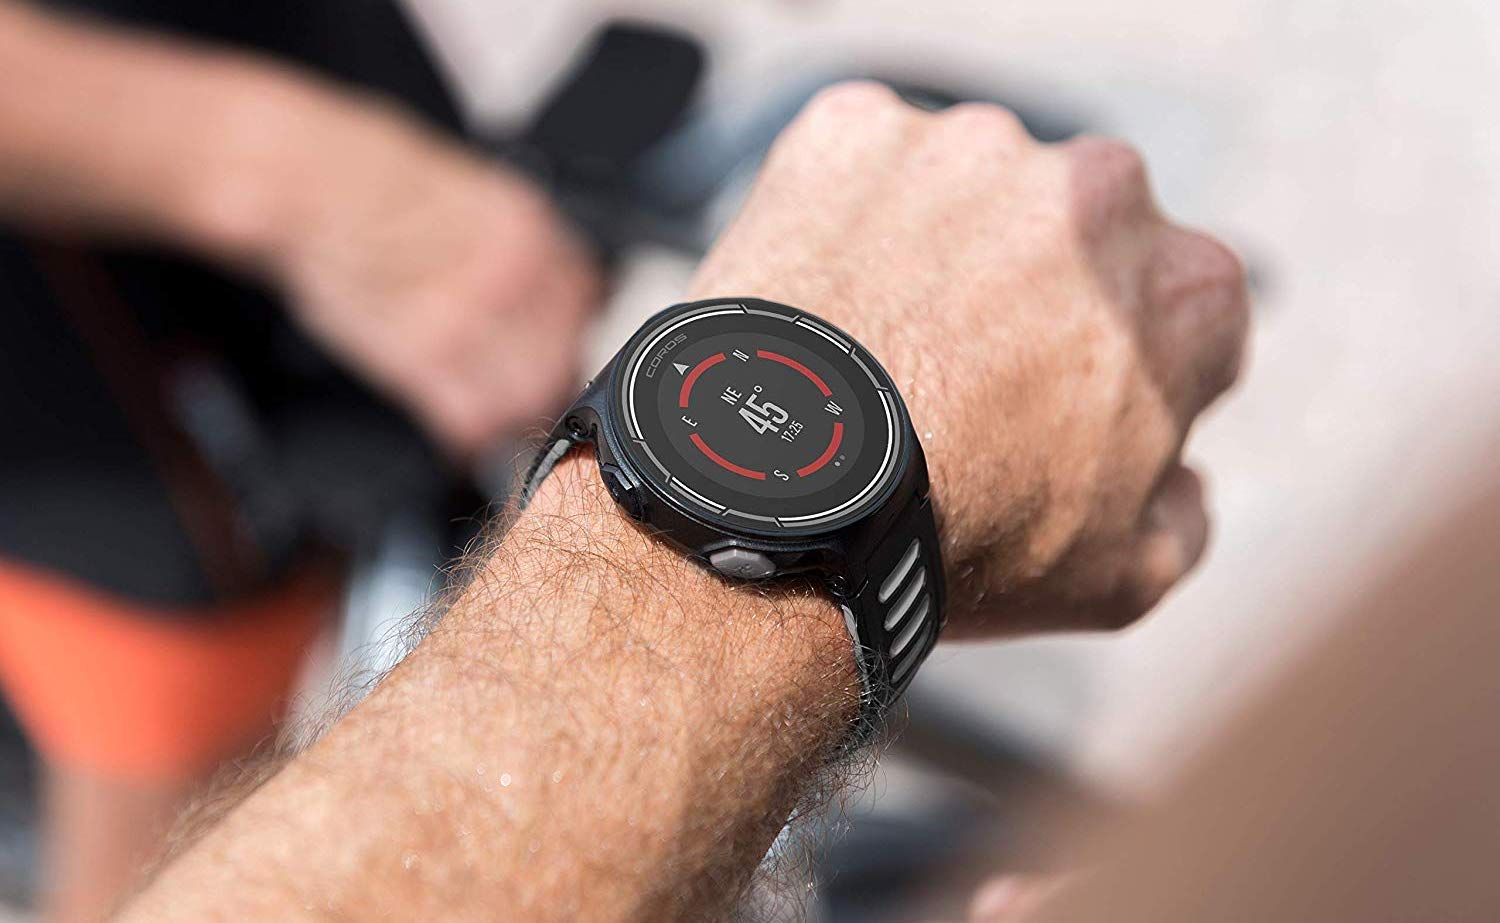 COROS PACE M1 GPS Multi-Sport Smartwatch helps you achieve your athletic goals